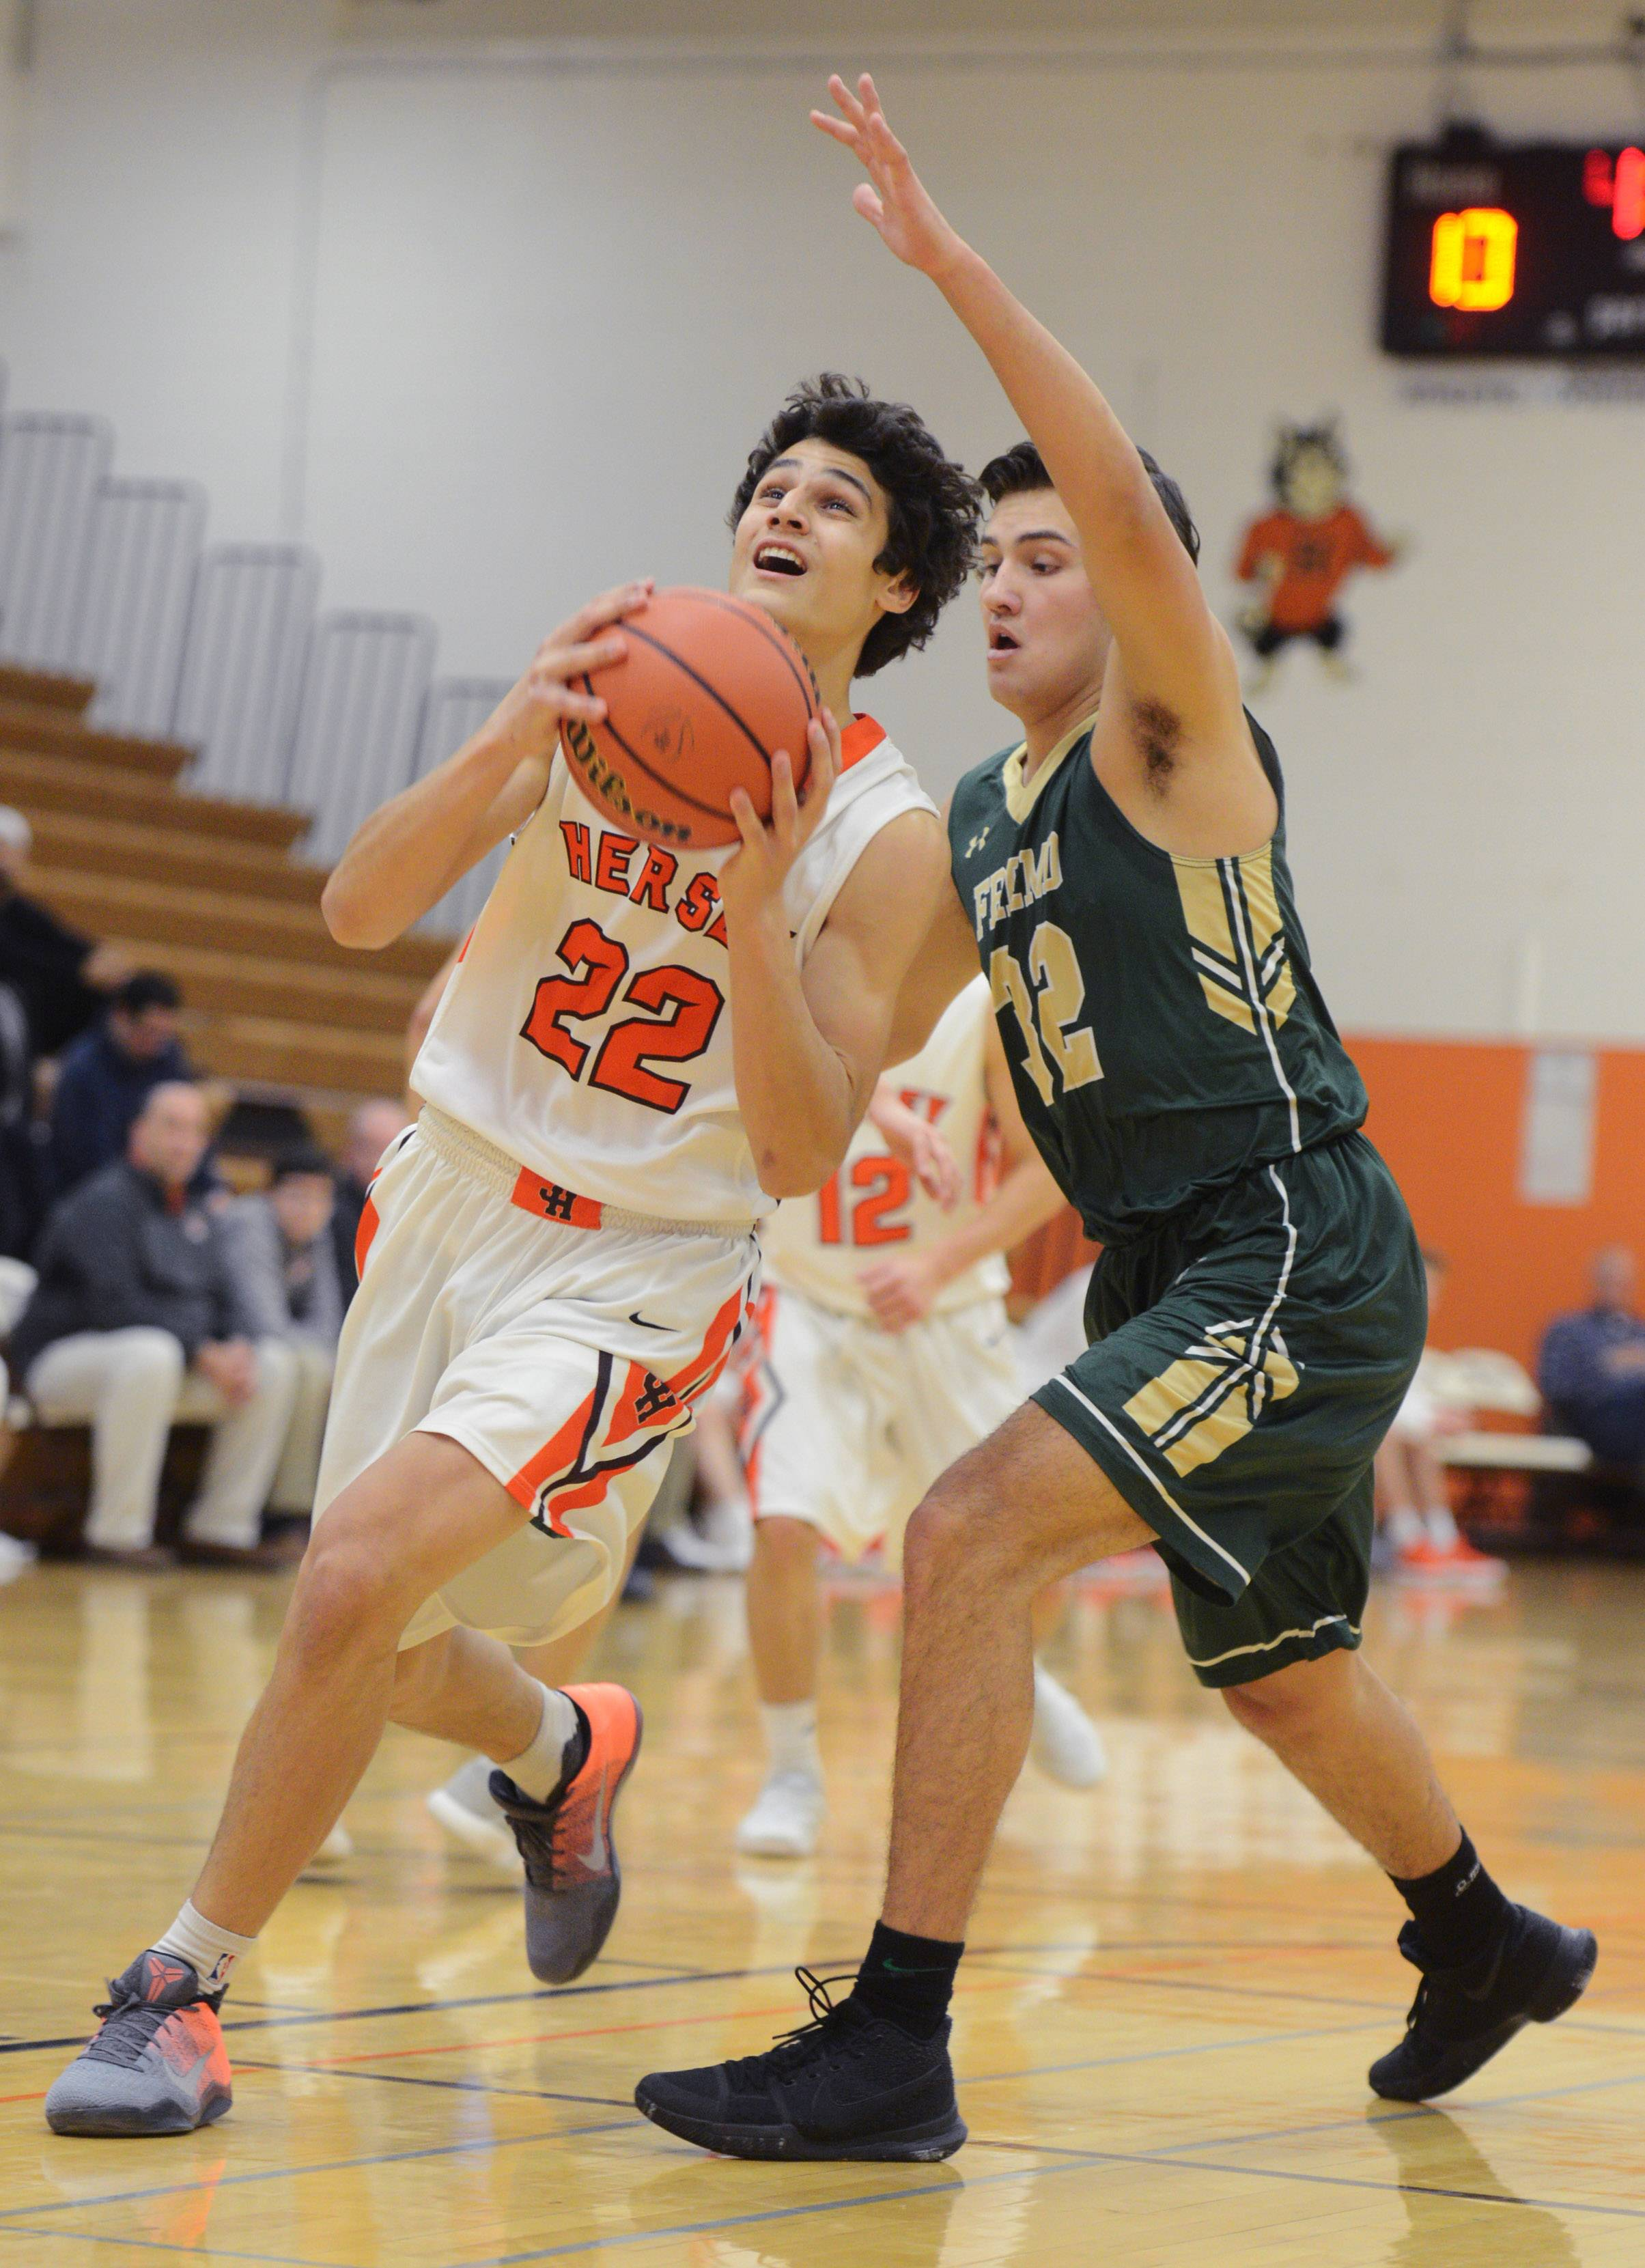 Hersey's Jace Coffaro, left, drives to the basket against the defense of Fremd's Matt Gumularz during Tuesday's game in Arlington Heights.